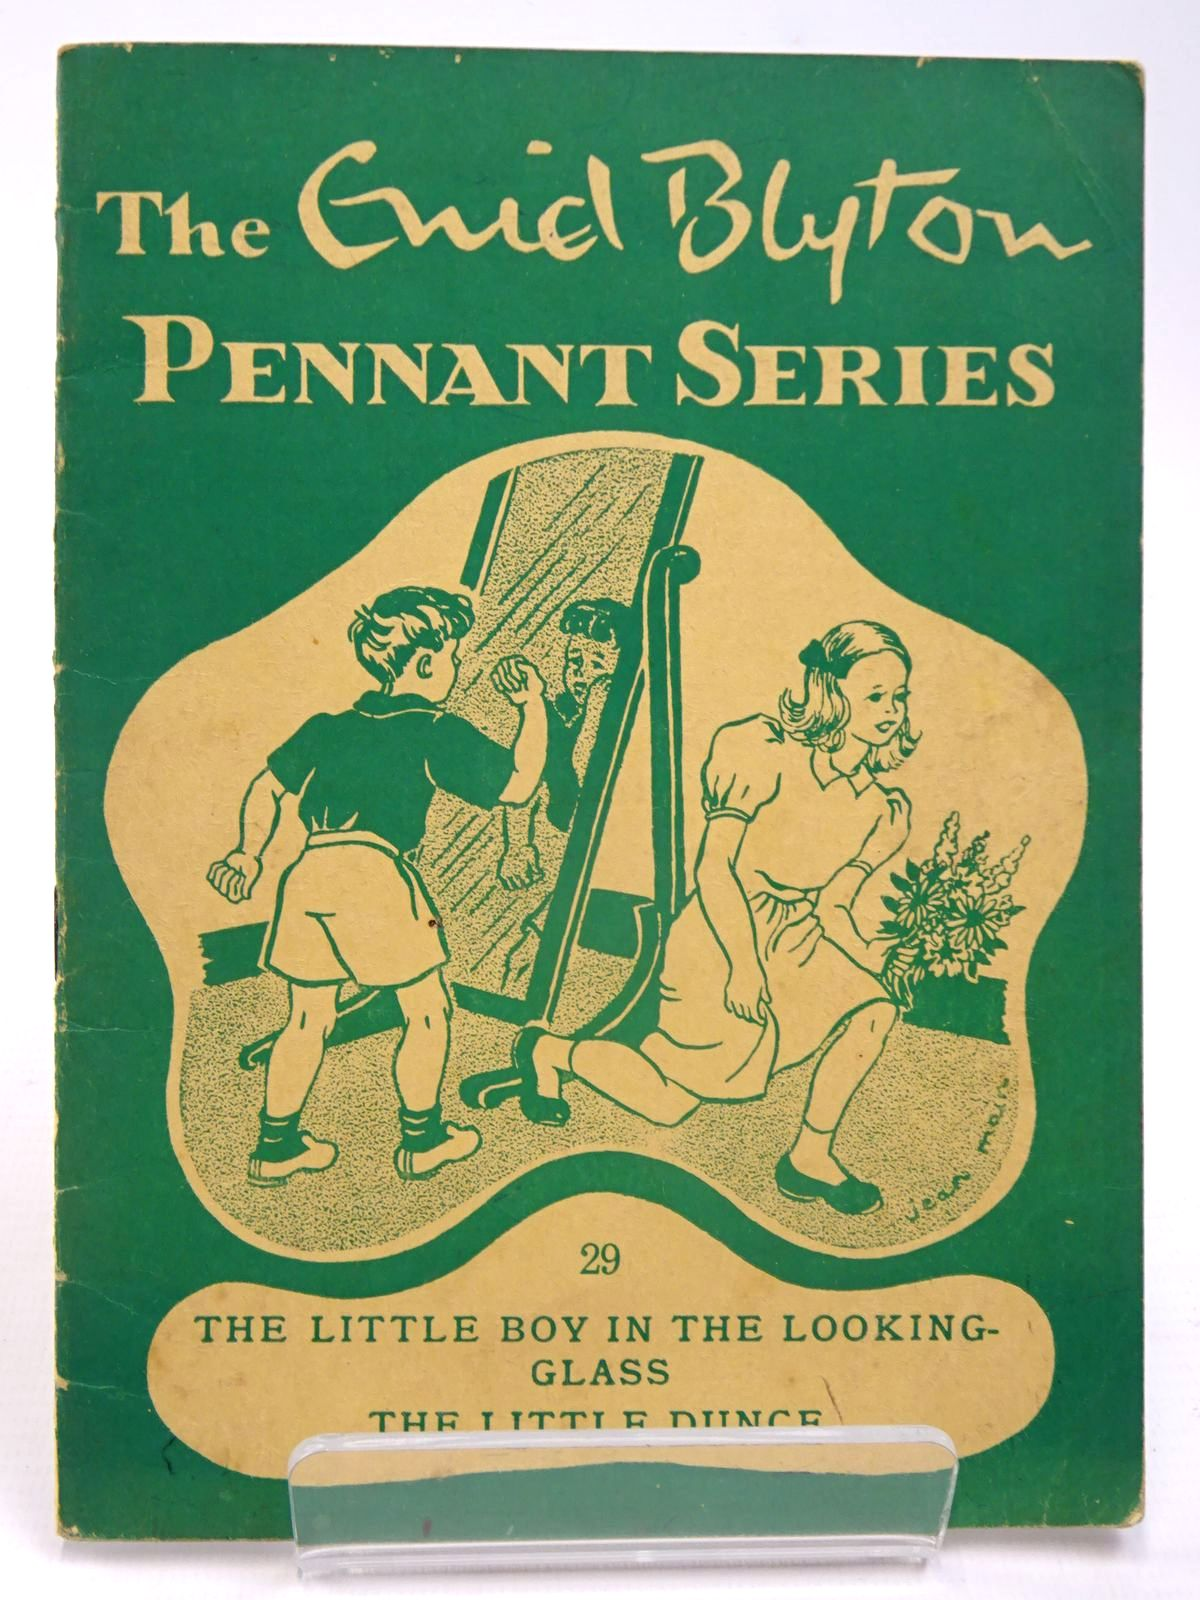 Photo of THE ENID BLYTON PENNANT SERIES No. 29 THE LITTLE BOY IN THE LOOKING-GLASS / THE LITTLE DUNCE written by Blyton, Enid illustrated by Soper, Eileen Main, Jean published by Macmillan & Co. Ltd. (STOCK CODE: 2130512)  for sale by Stella & Rose's Books